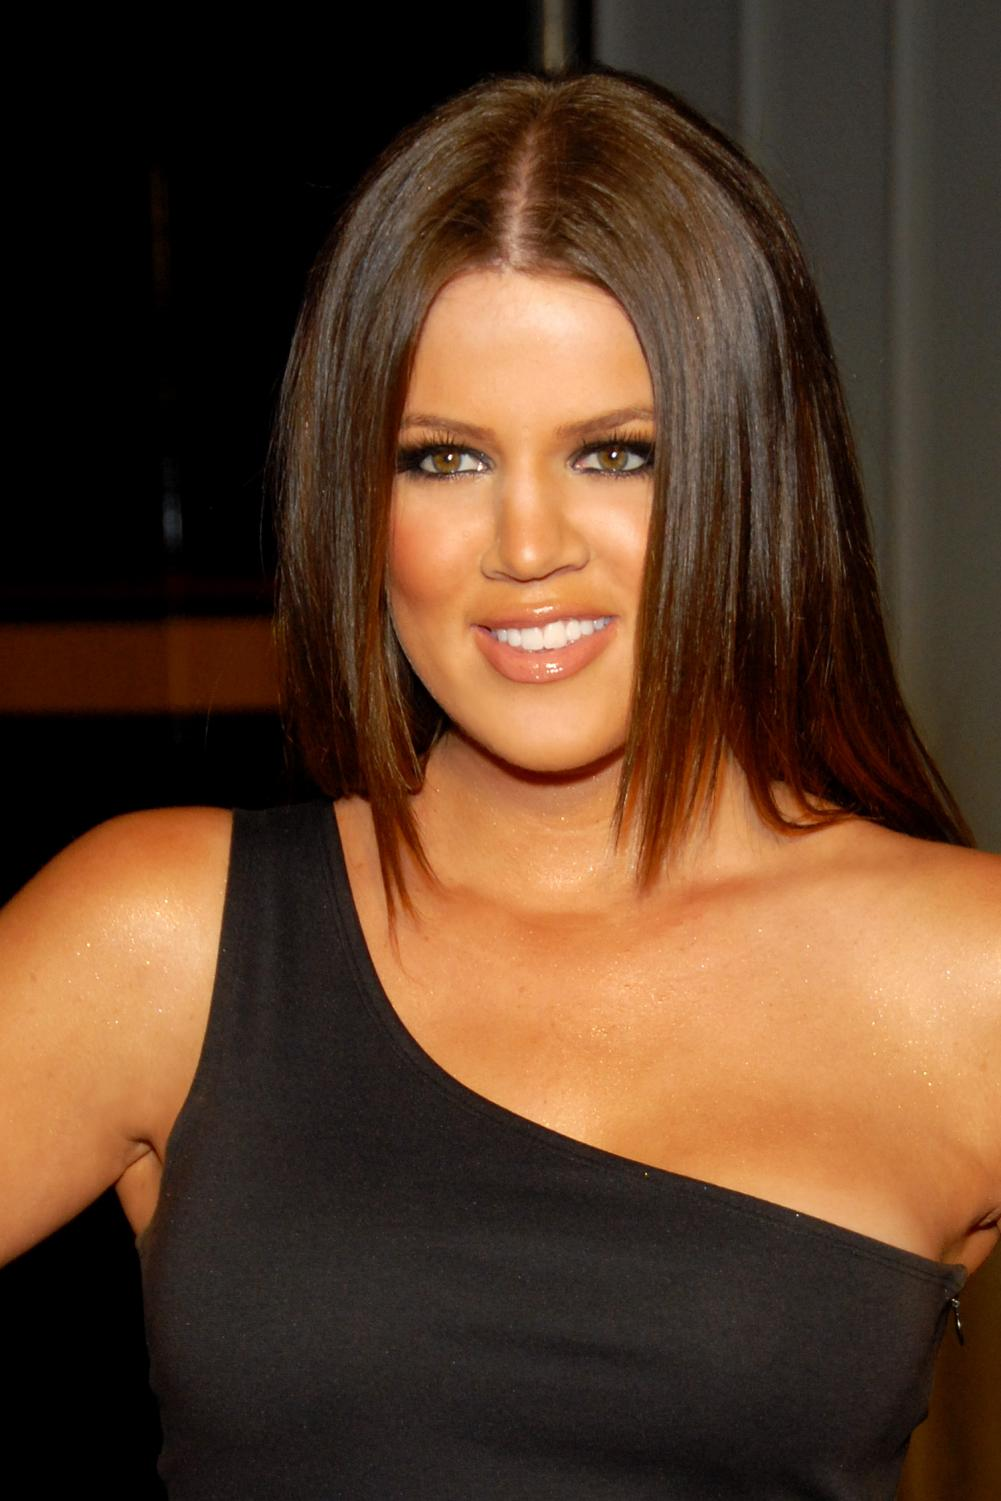 Khloe Kardashian, beams at paparazzi during the debut of her makeup line, Becca x Khloe.